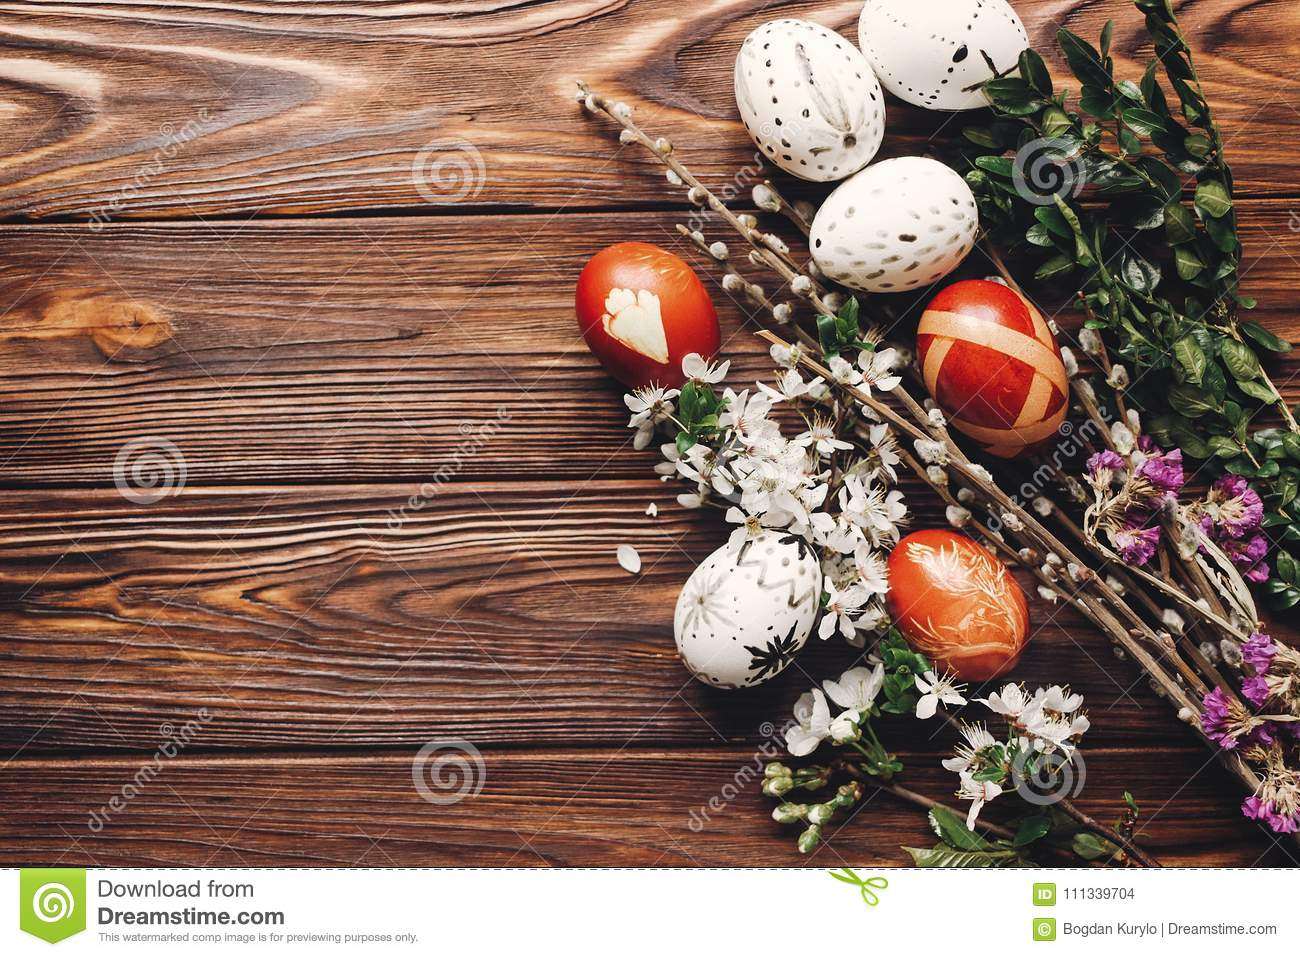 stylish easter eggs with white flowers and buds on wooden background flat lay. modern eggs and natural dyed with herbs, willow b